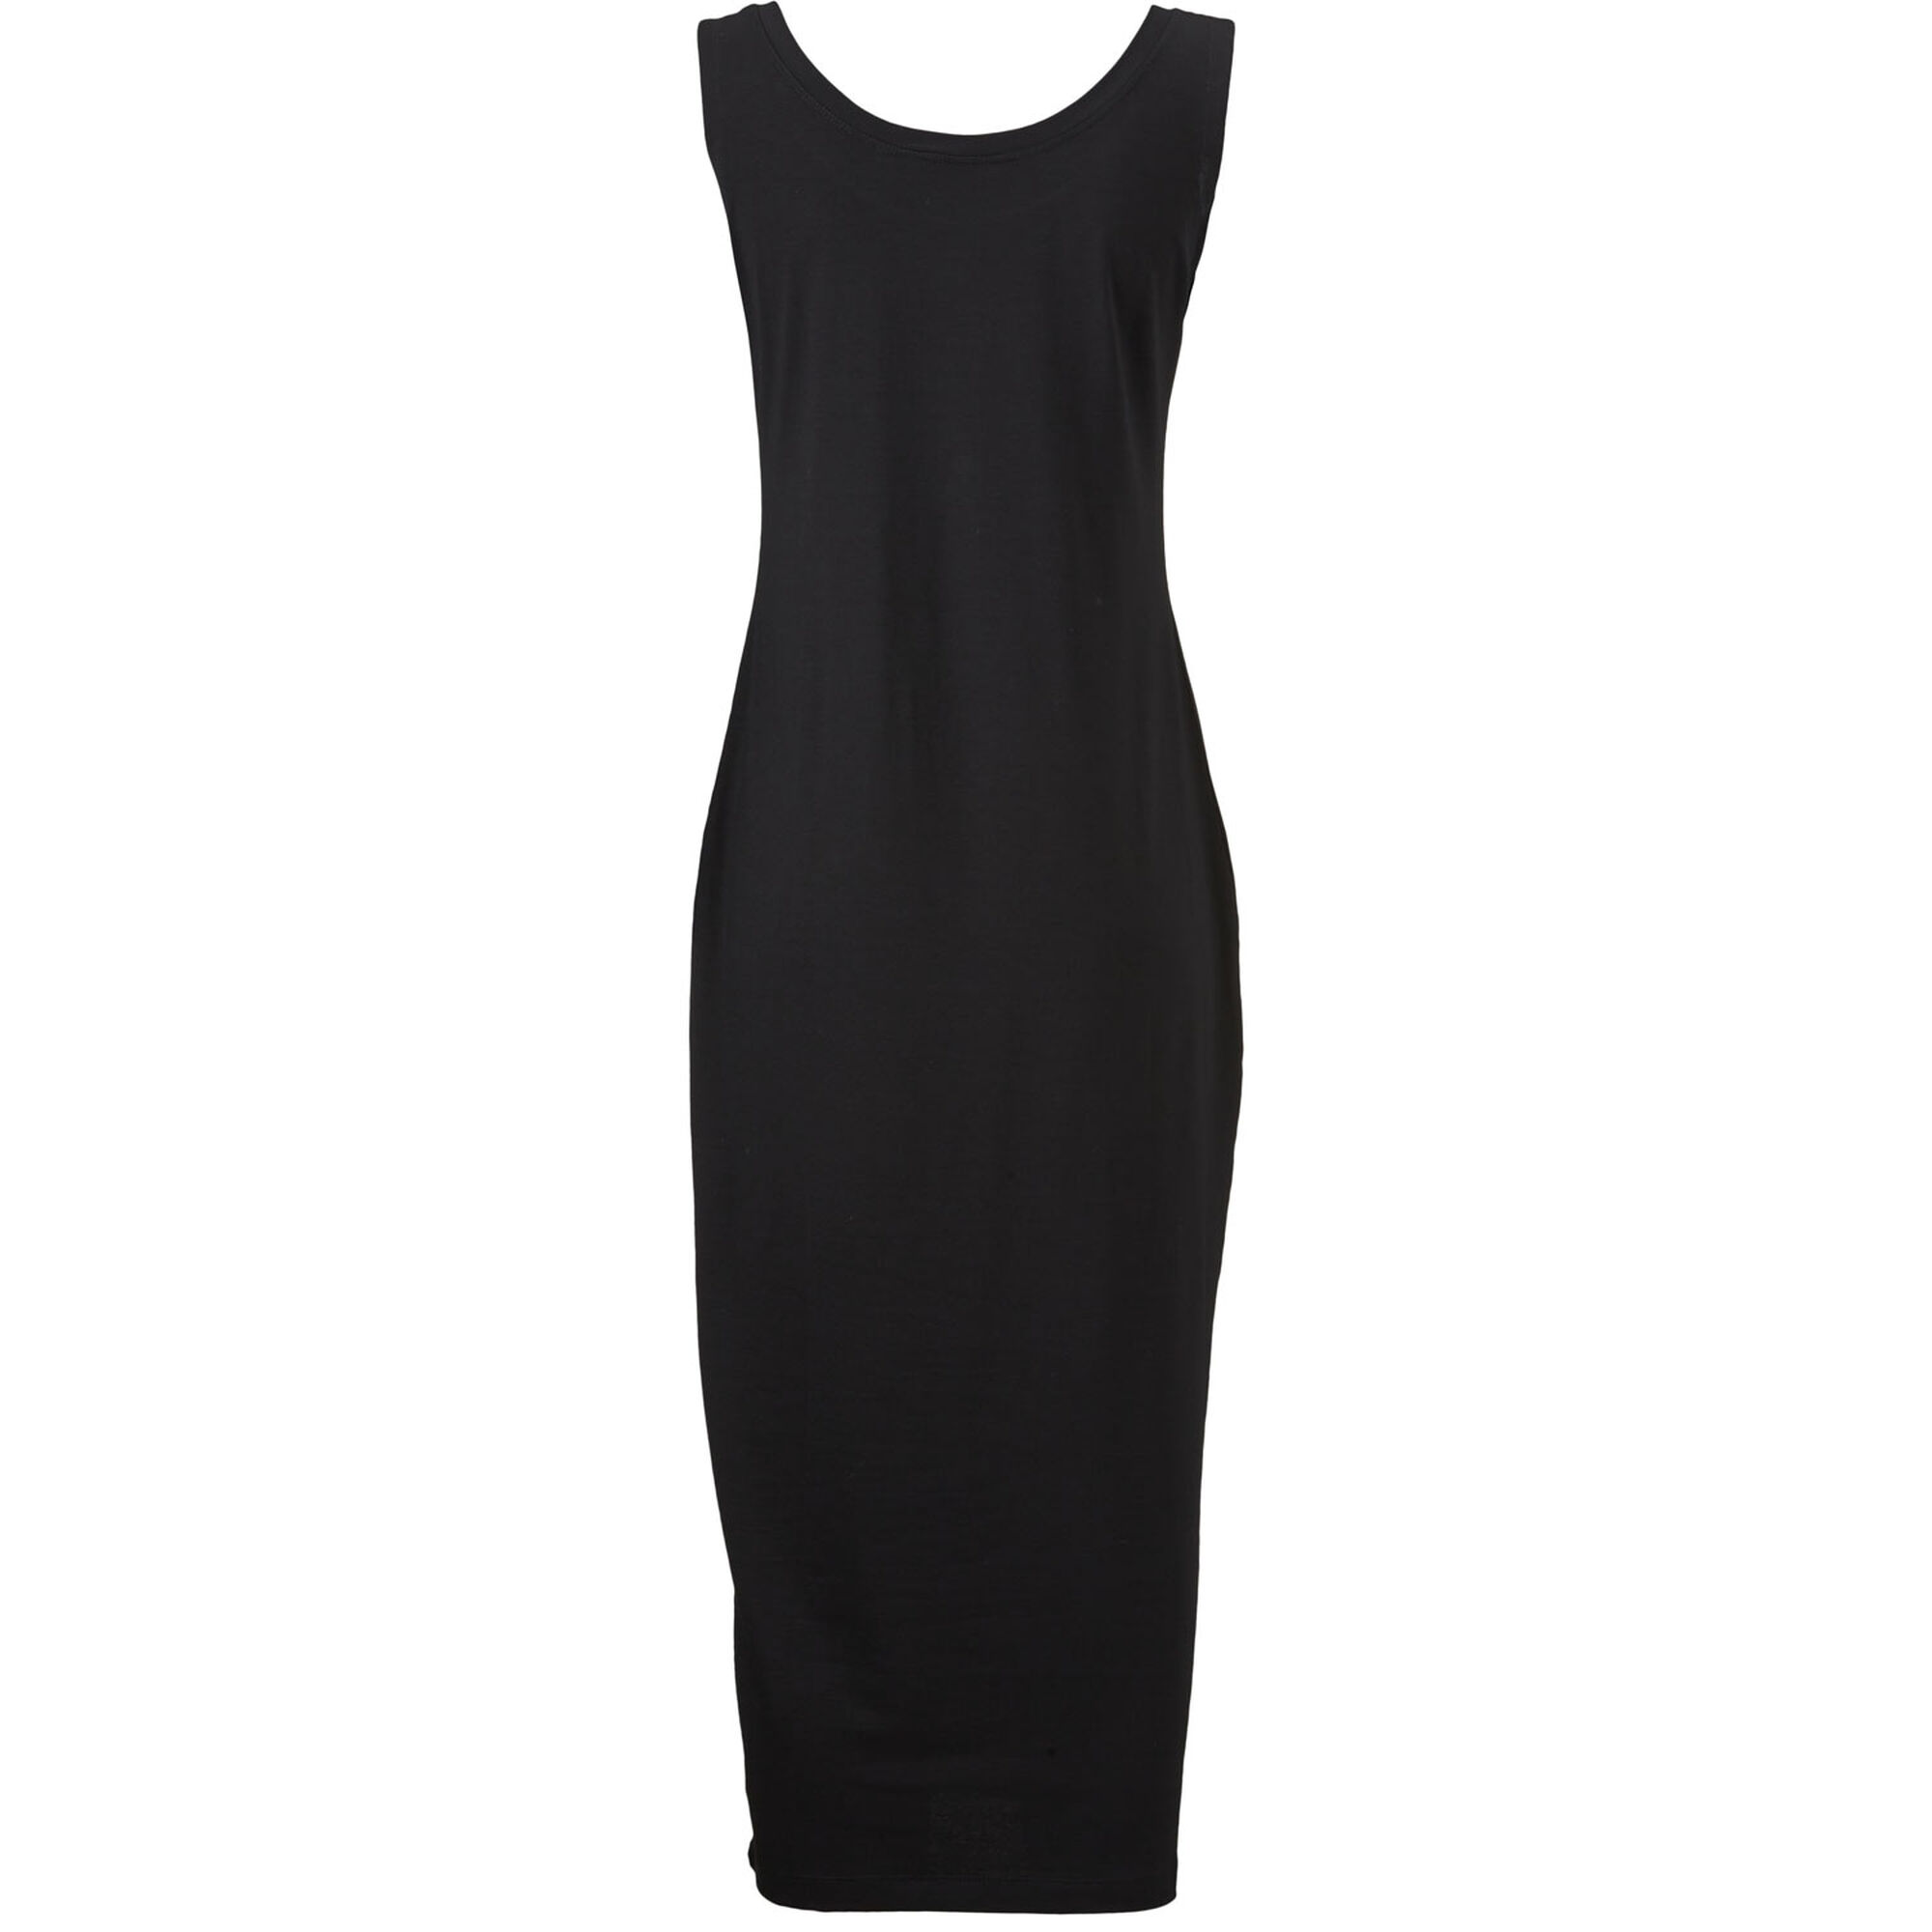 Olympia DRESS, Black, hi-res